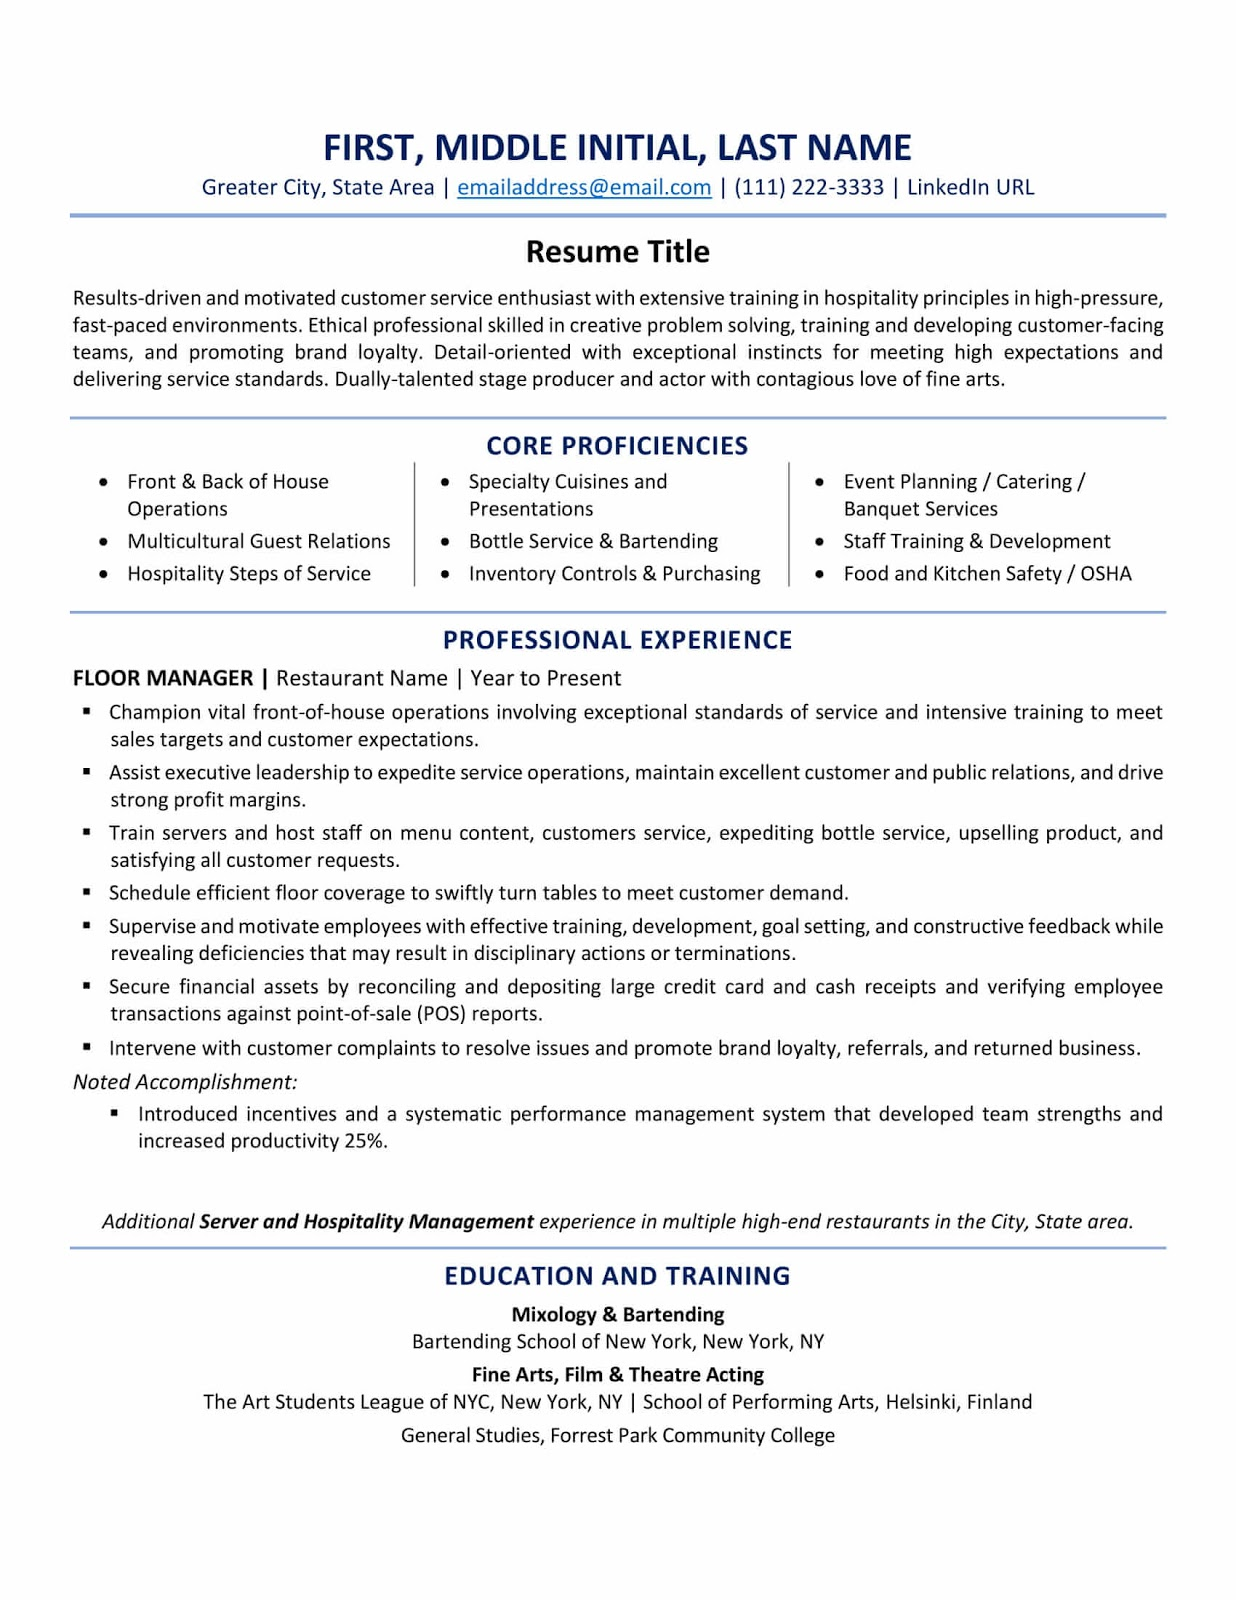 resume format best tips and examples updated middle initial on walmart software aerospace Resume Middle Initial On Resume